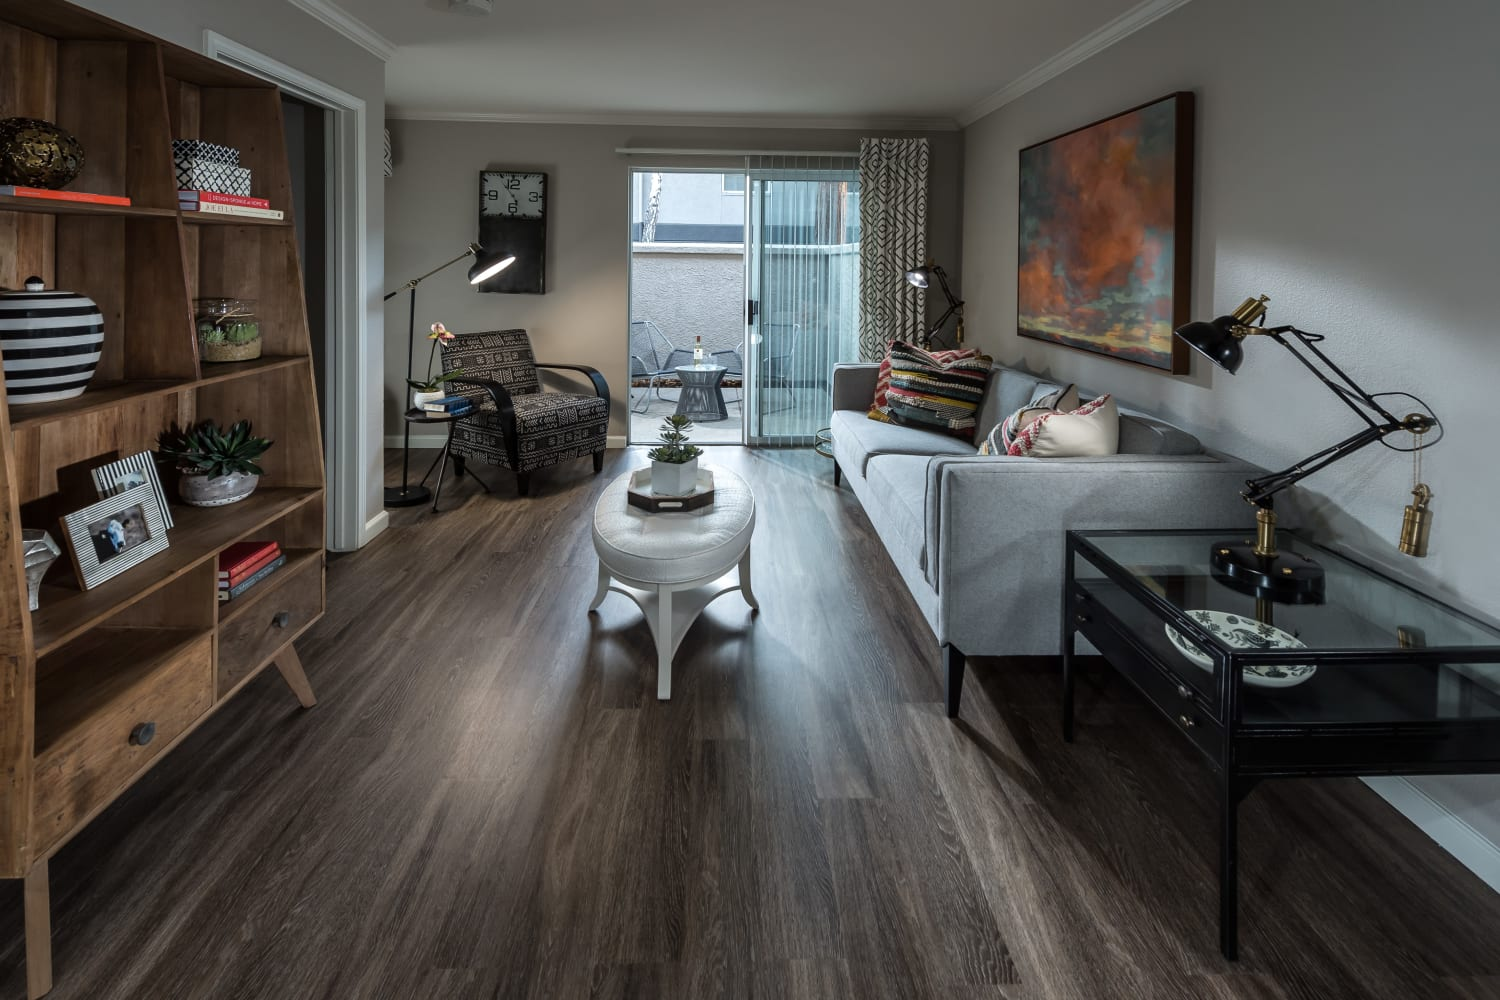 Enjoy modern layouts at Bella Vista Apartments in Santa Clara, California